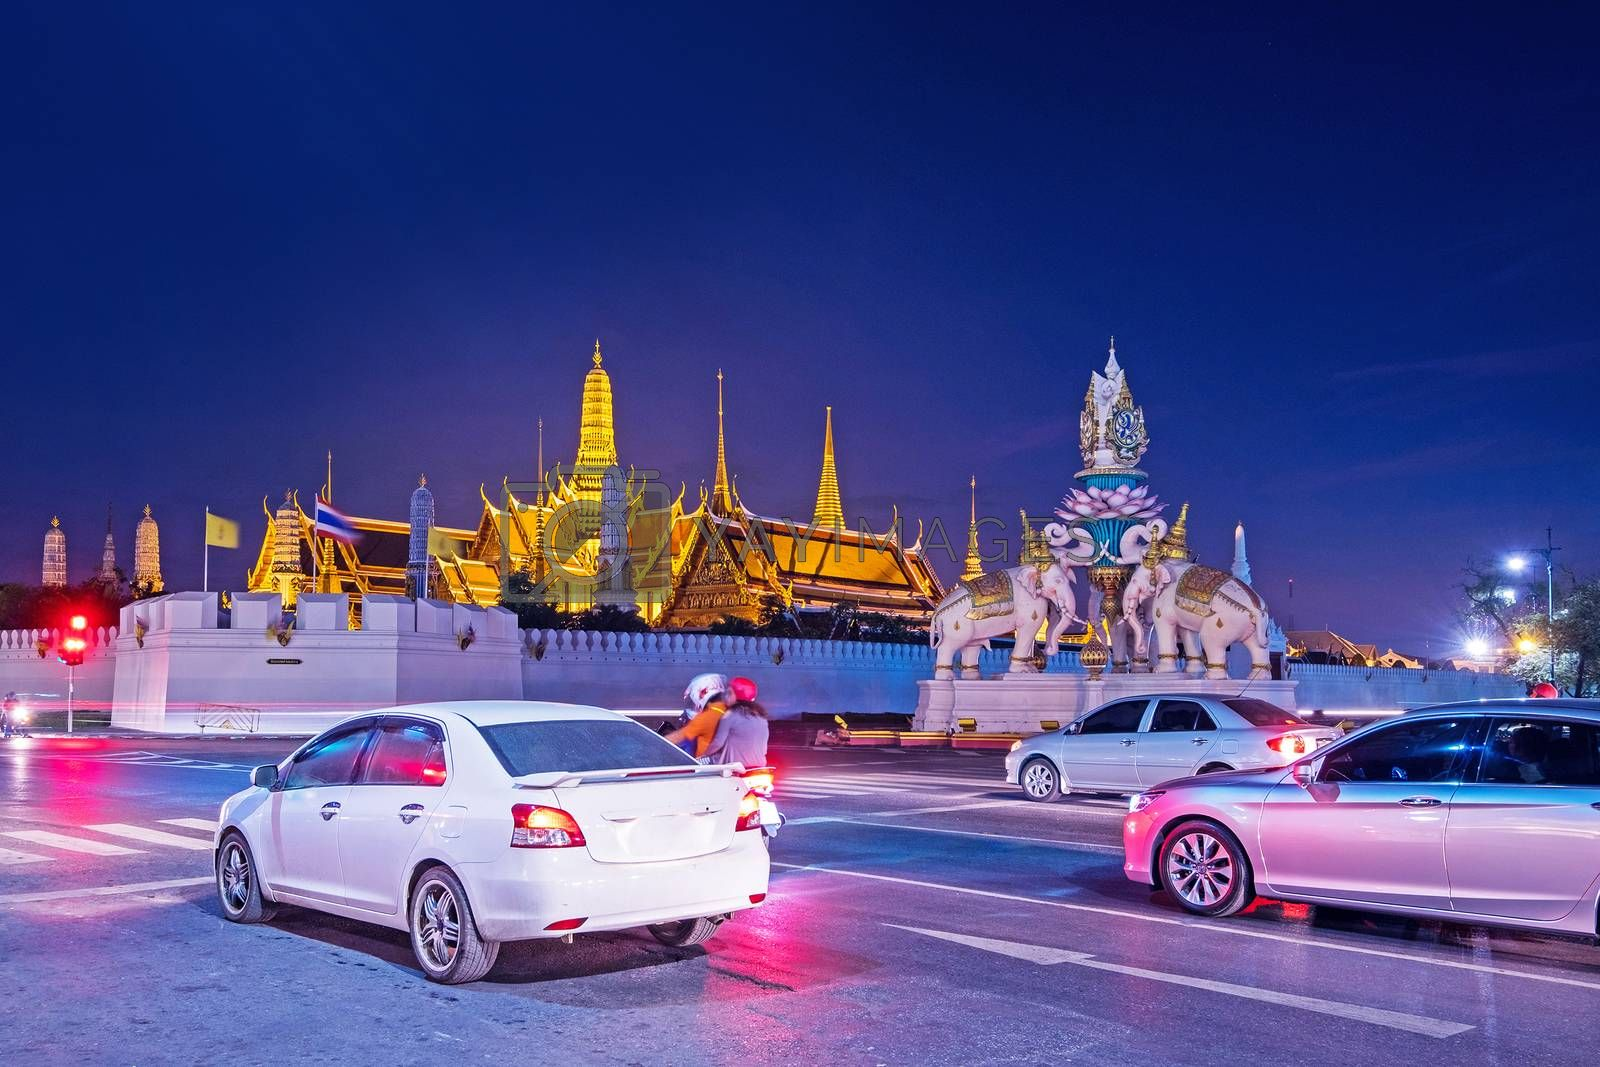 Traffic jam Wat Phra Kaew (The Emerald Buddha) night view in Thailand